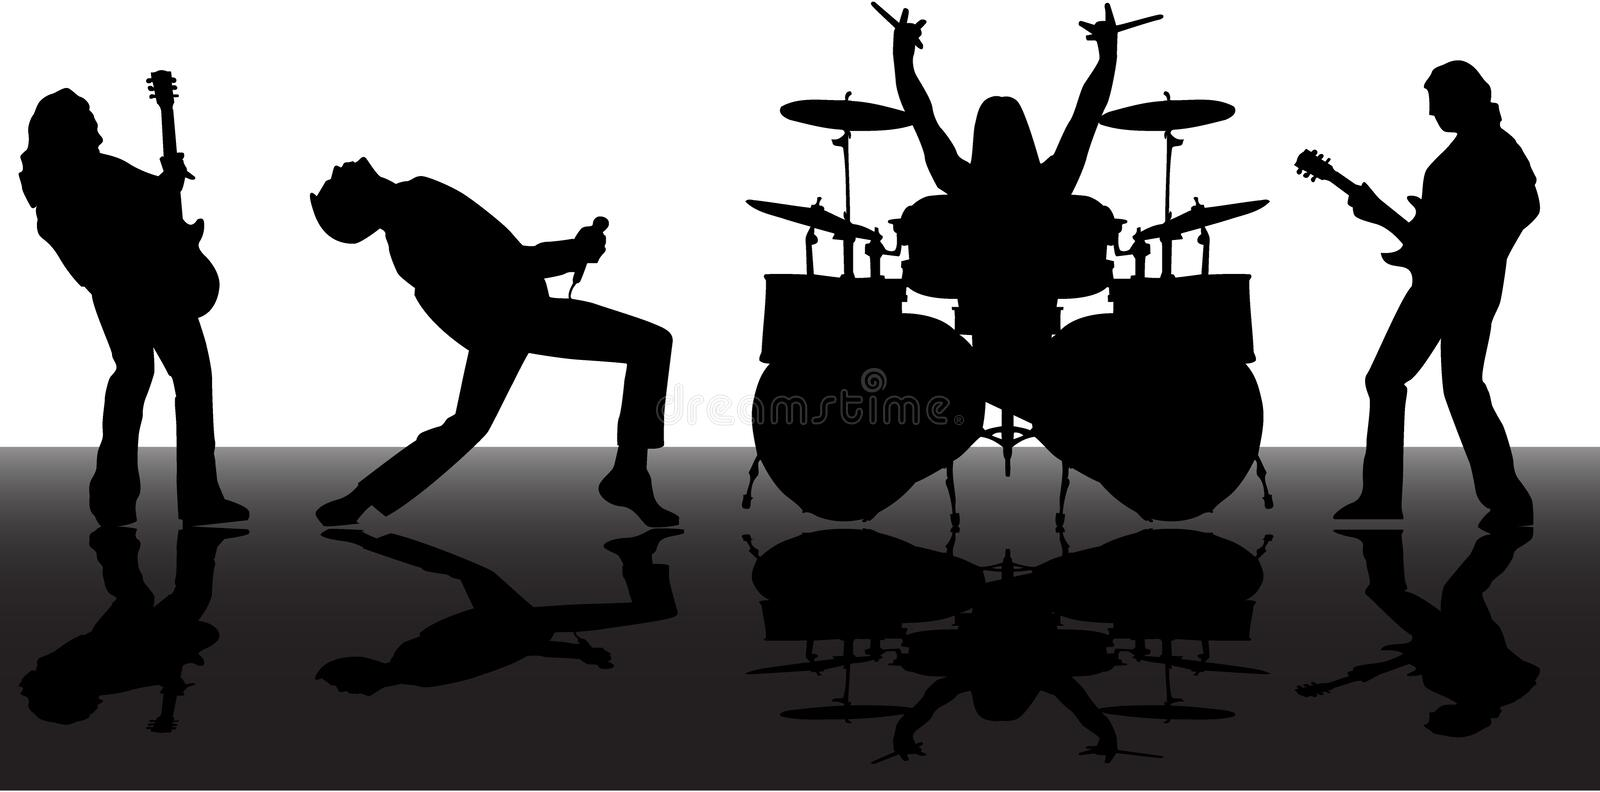 Silhouettes de Musicans illustration stock